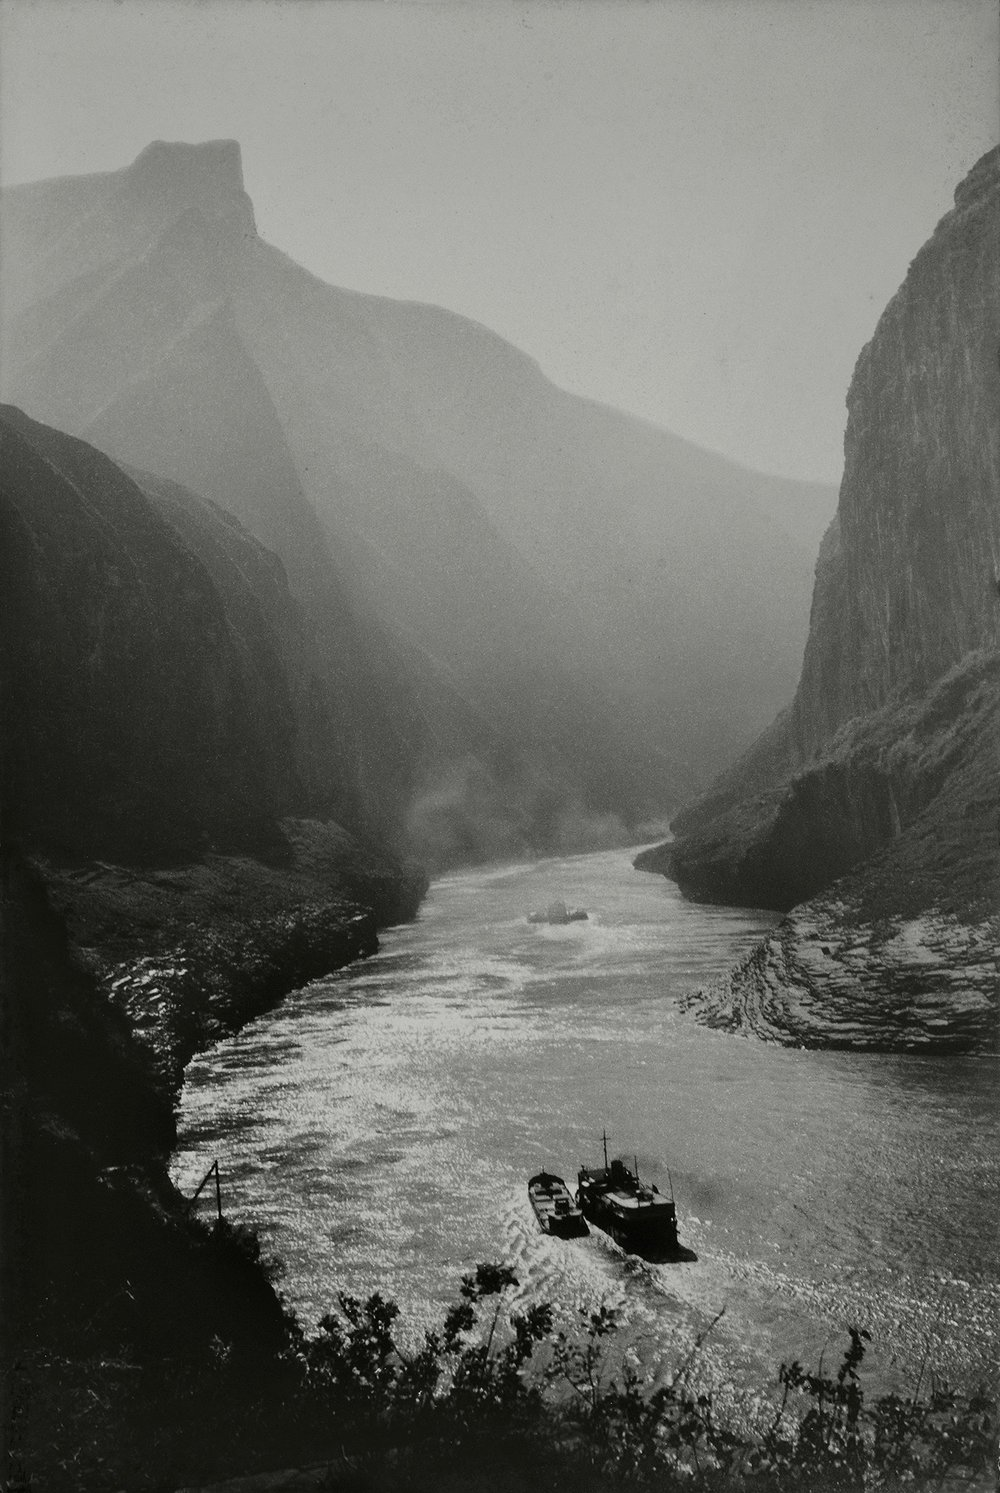 xue-zijiang-china-1950s-photography-of-china-4.jpeg